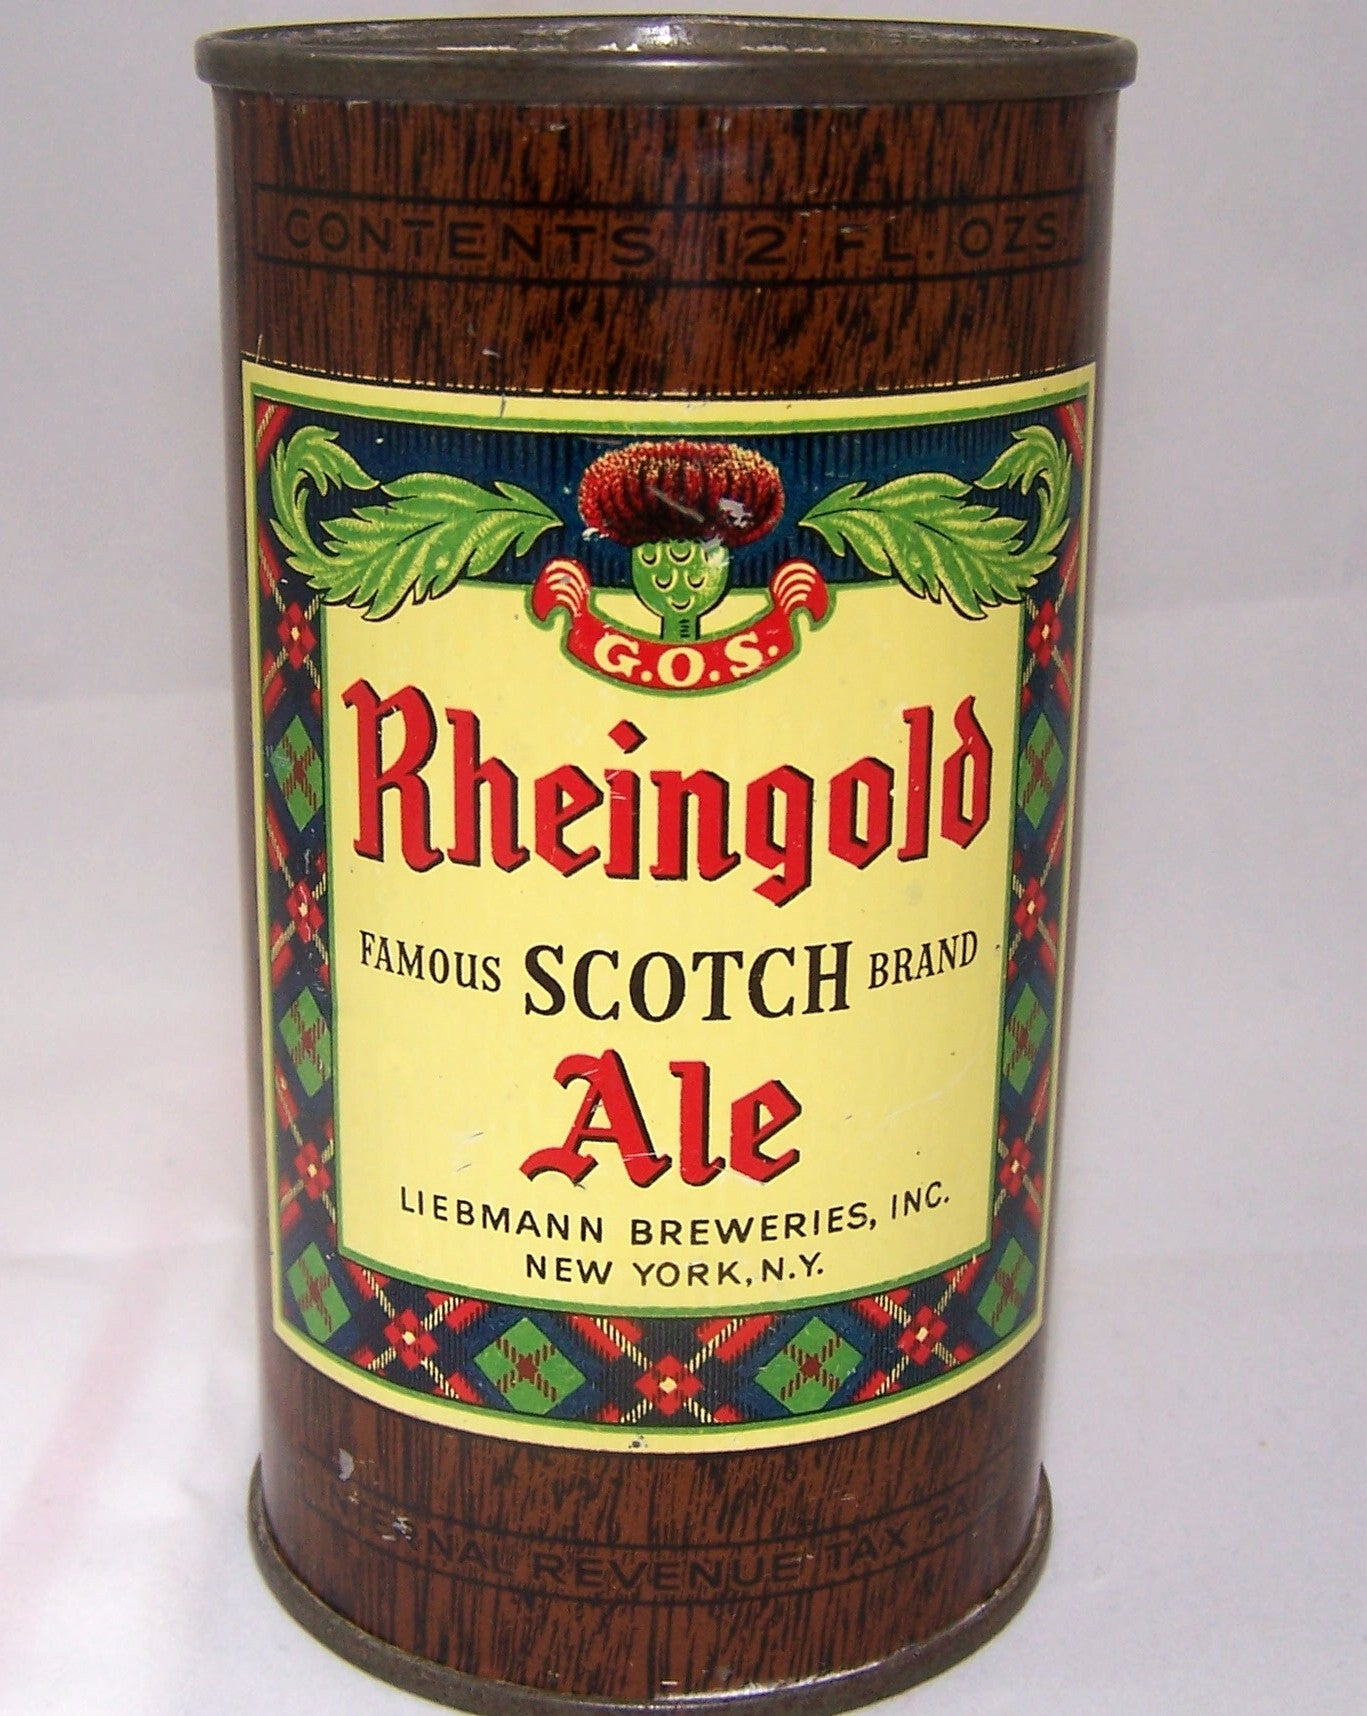 Rheingold Scotch Ale (IRTP) Single face, USBC 123-25, Grade 1/1+